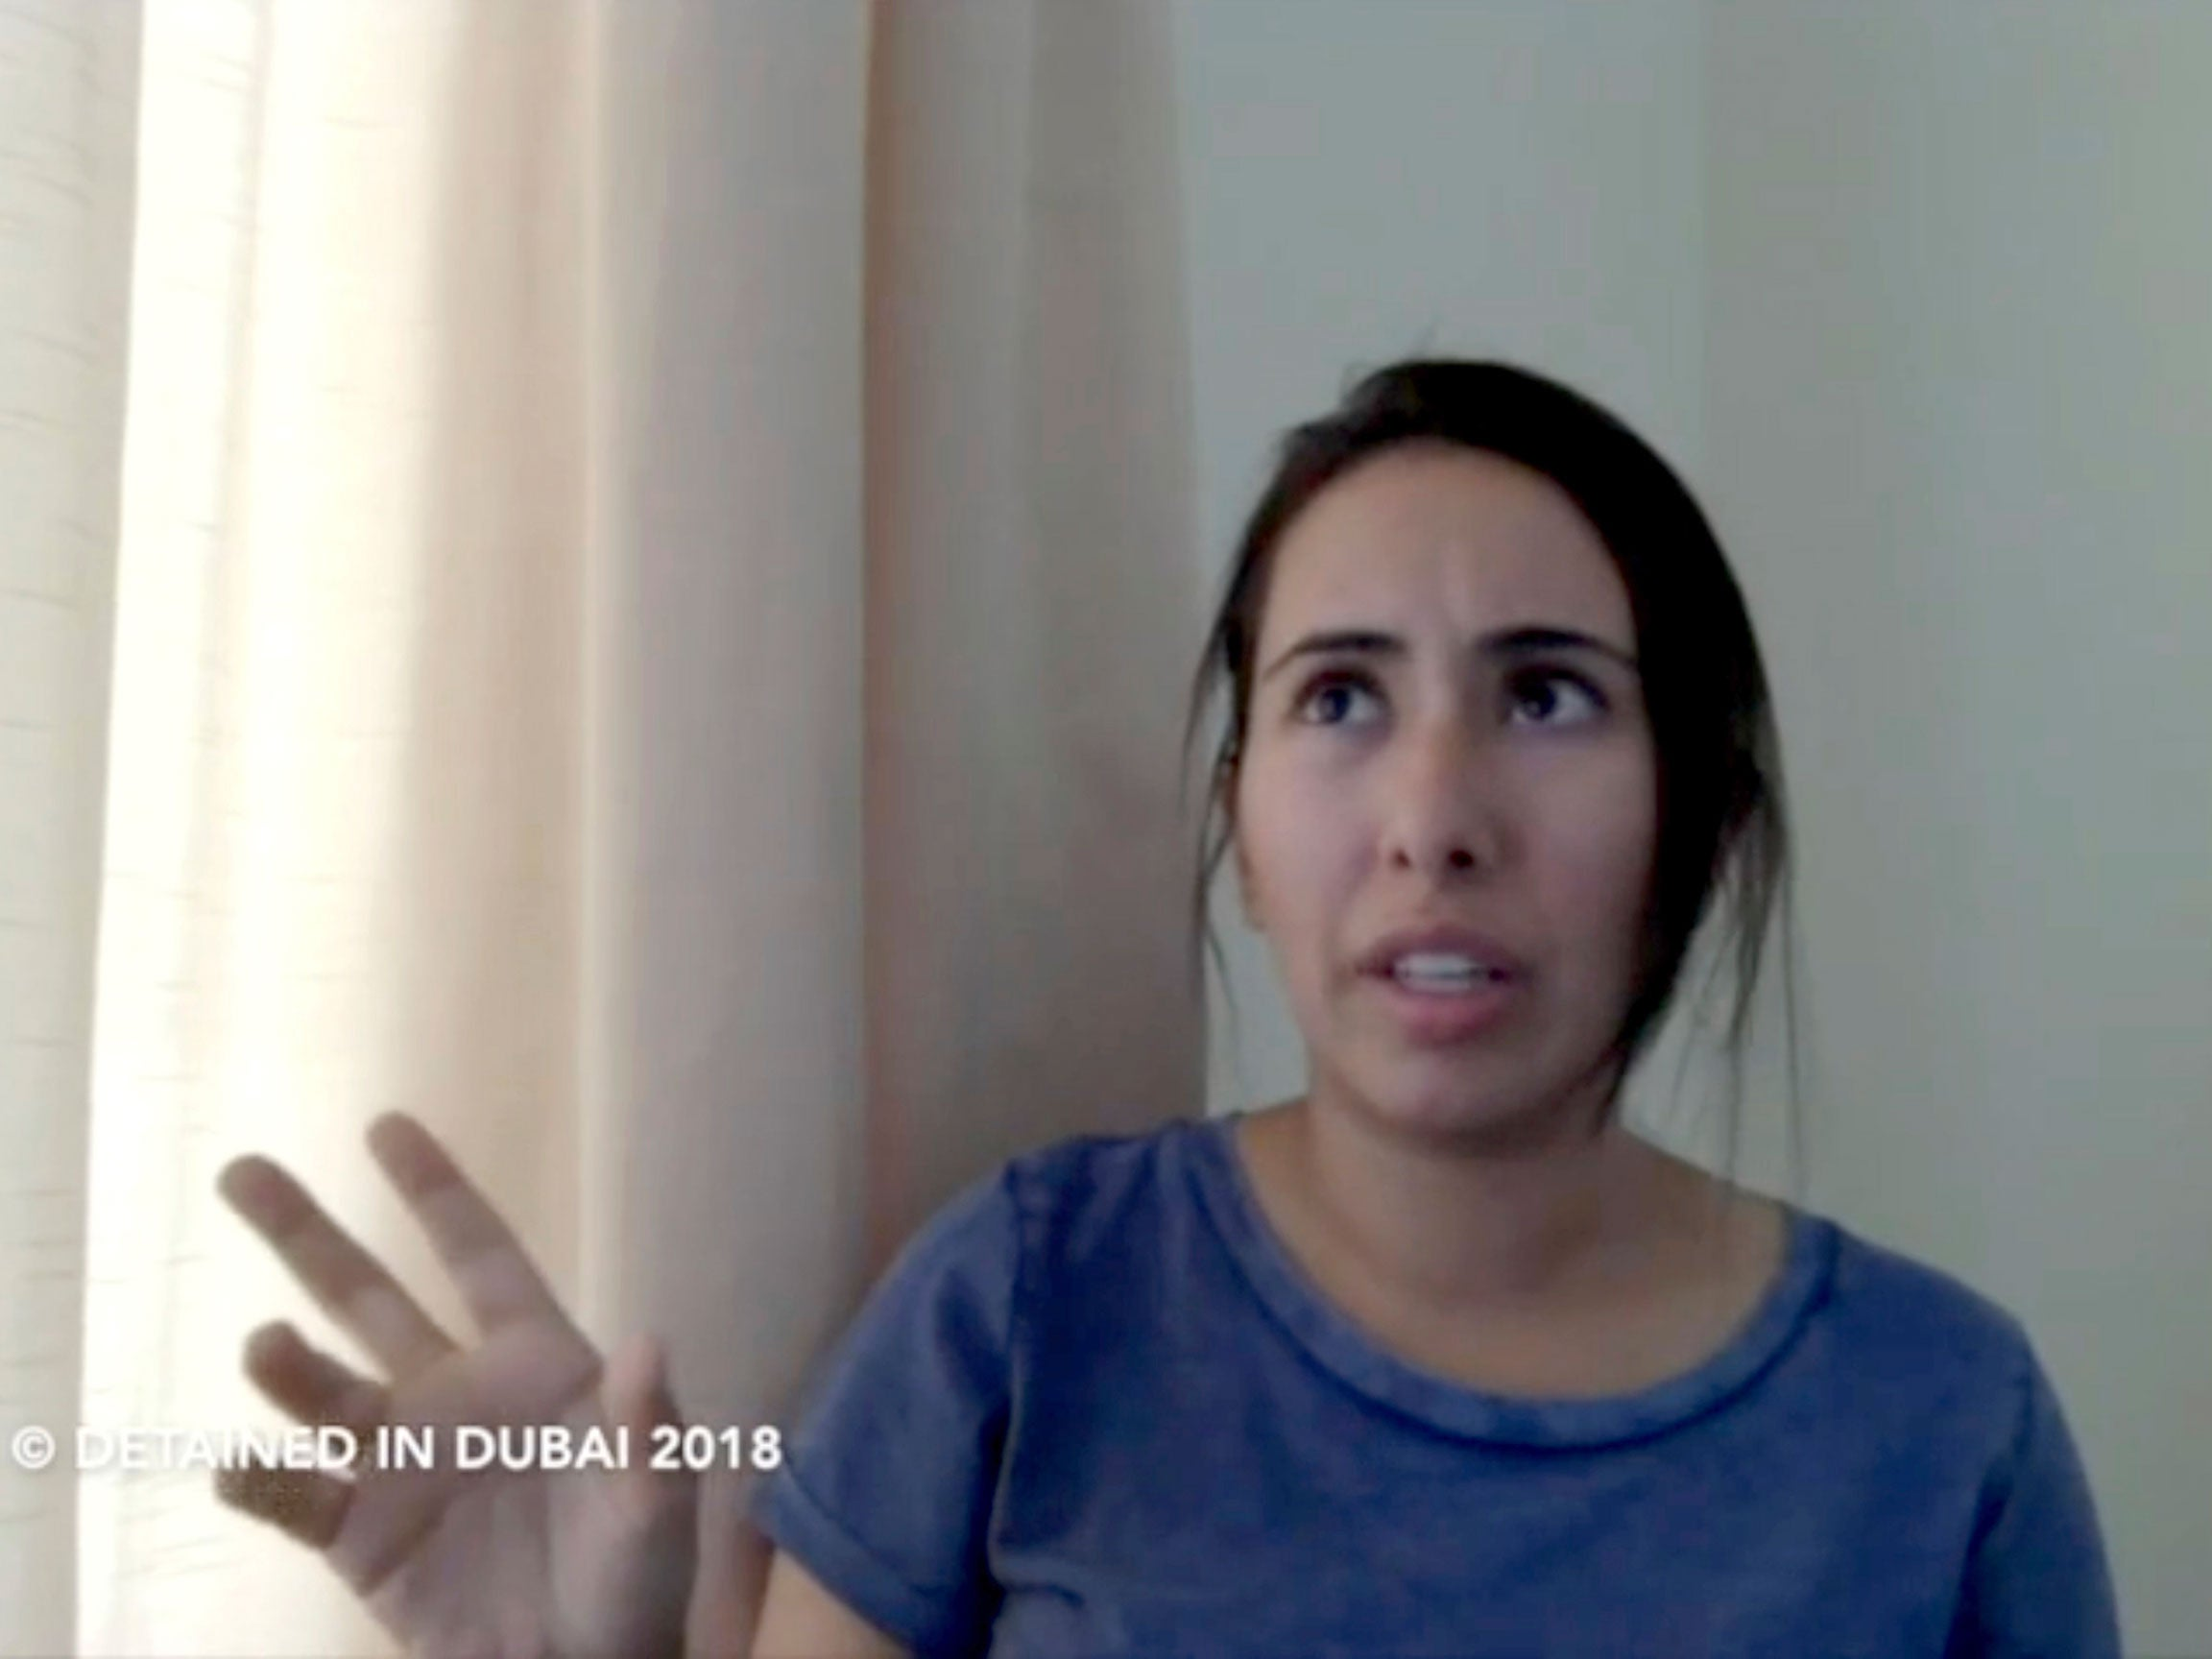 Missing princess is 'safe in Dubai,' say Emirate's rulers